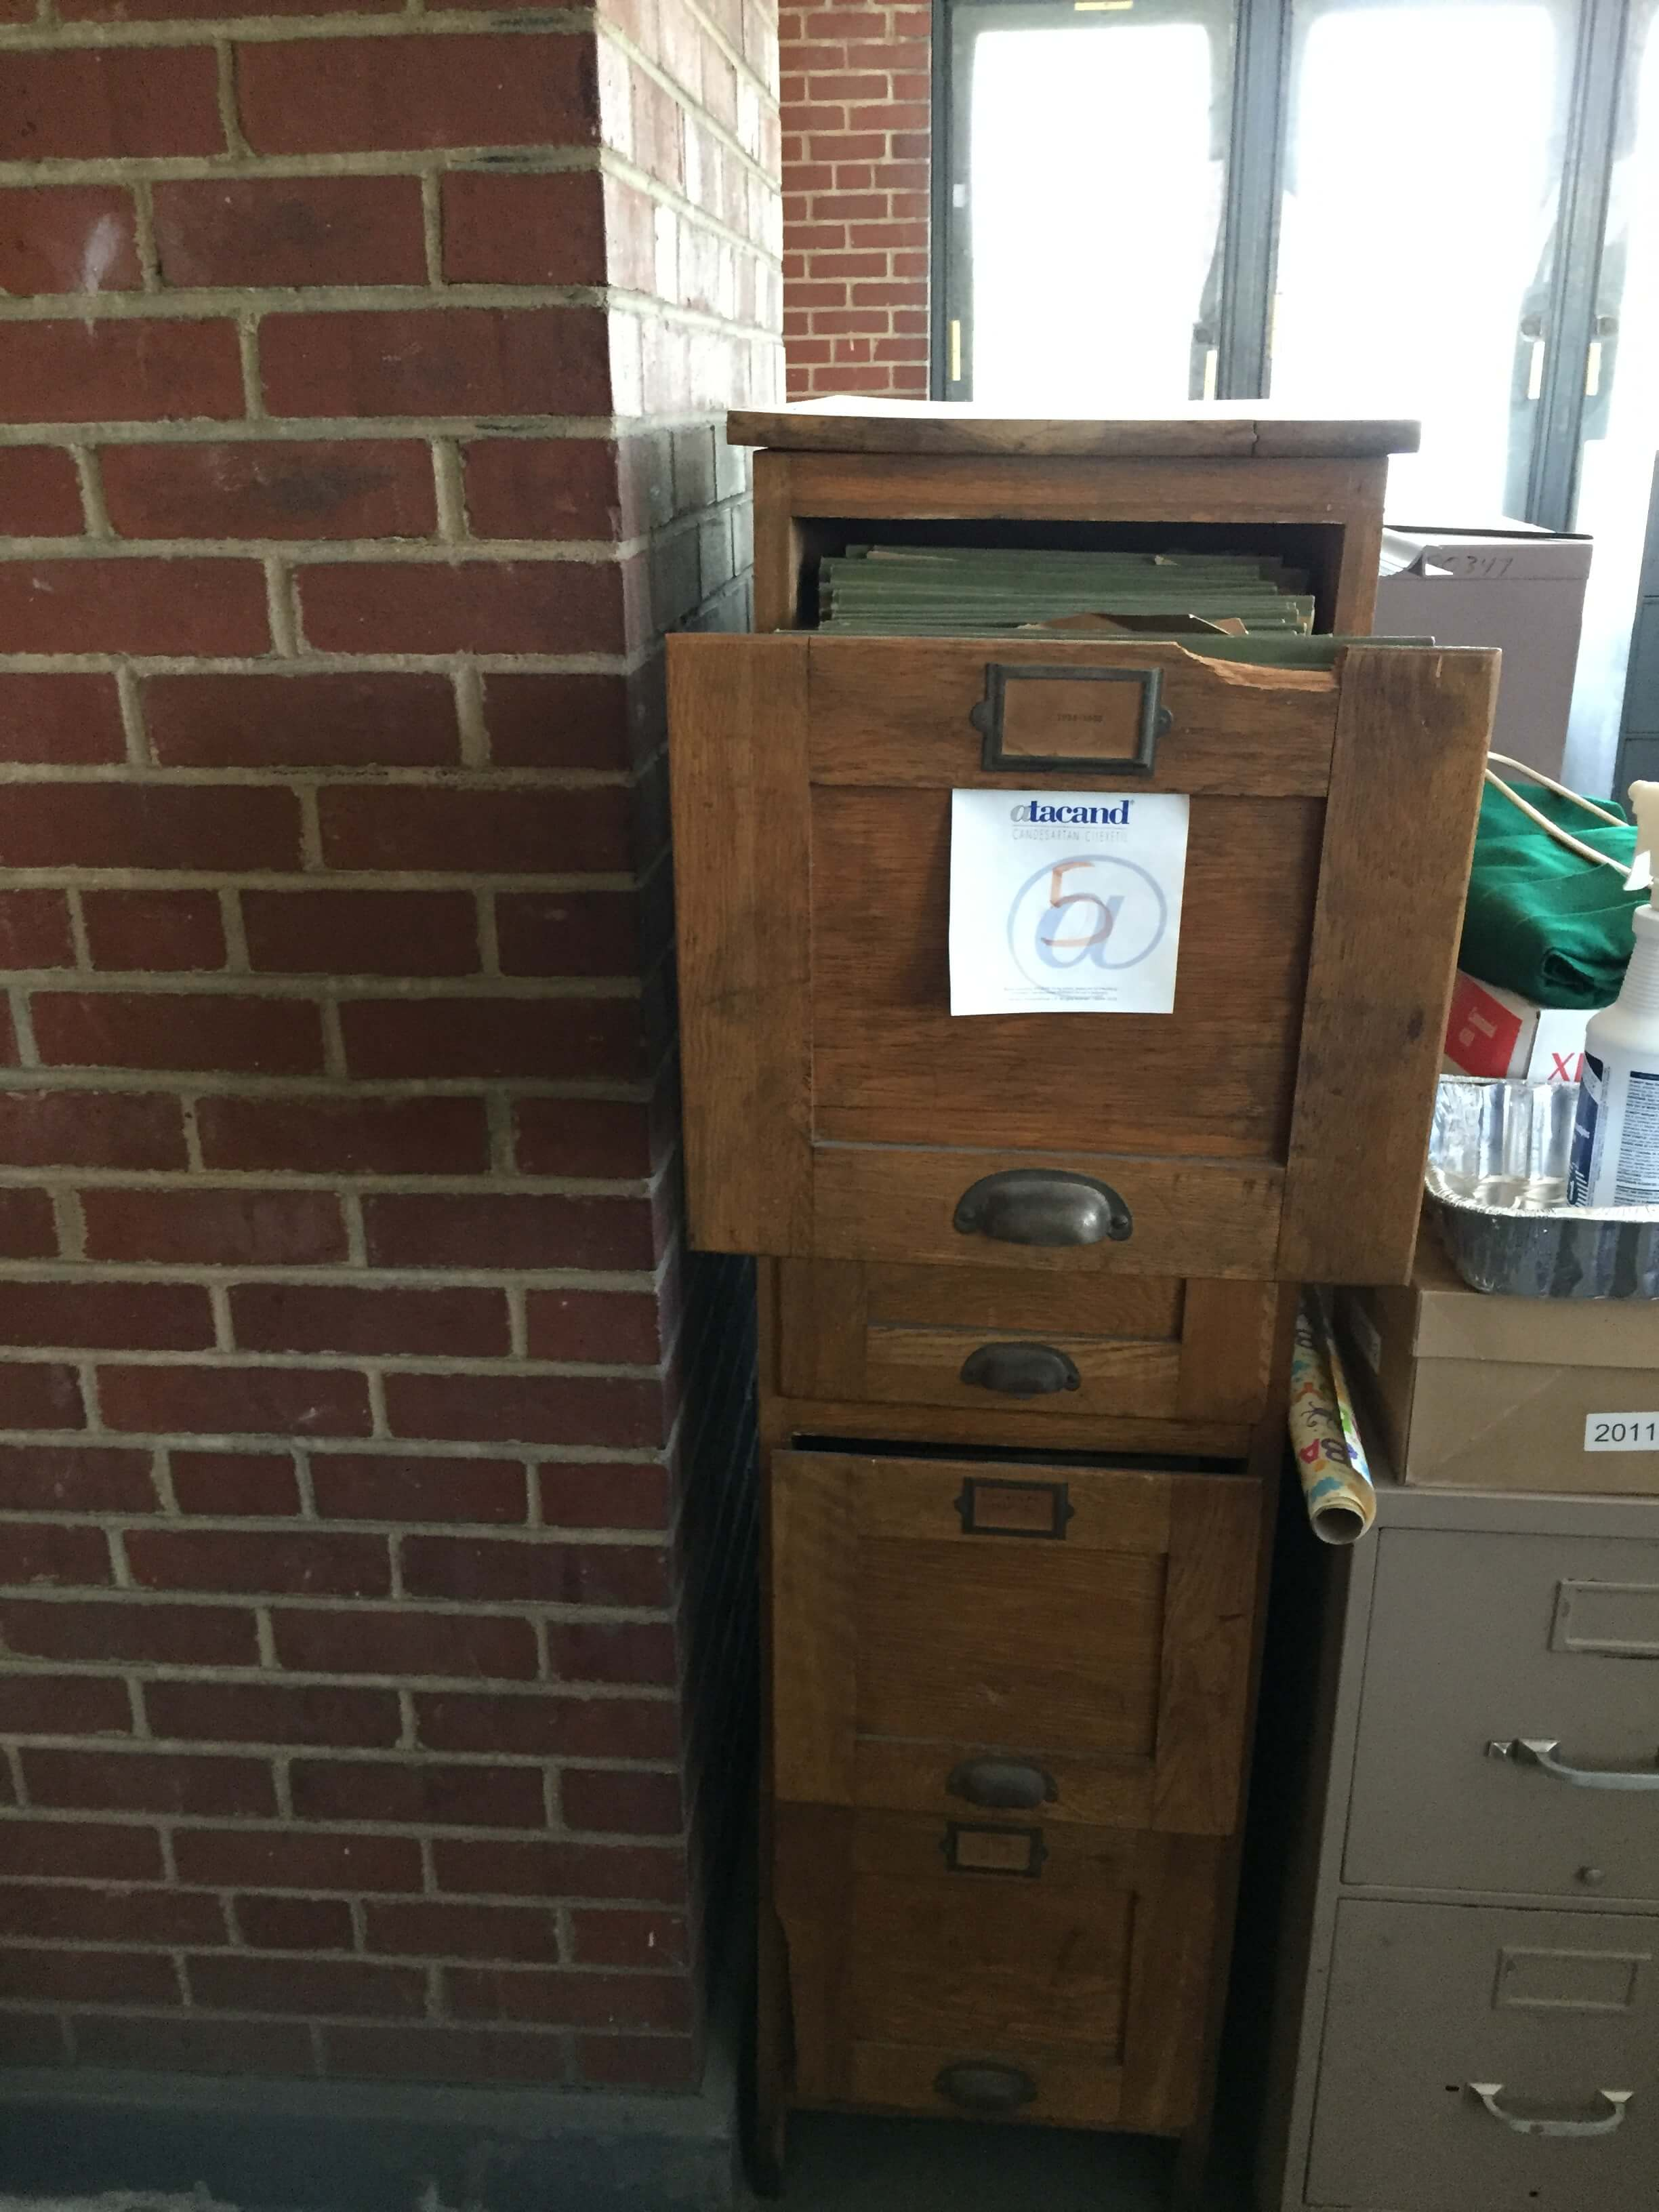 School Records-Filing Cabinet